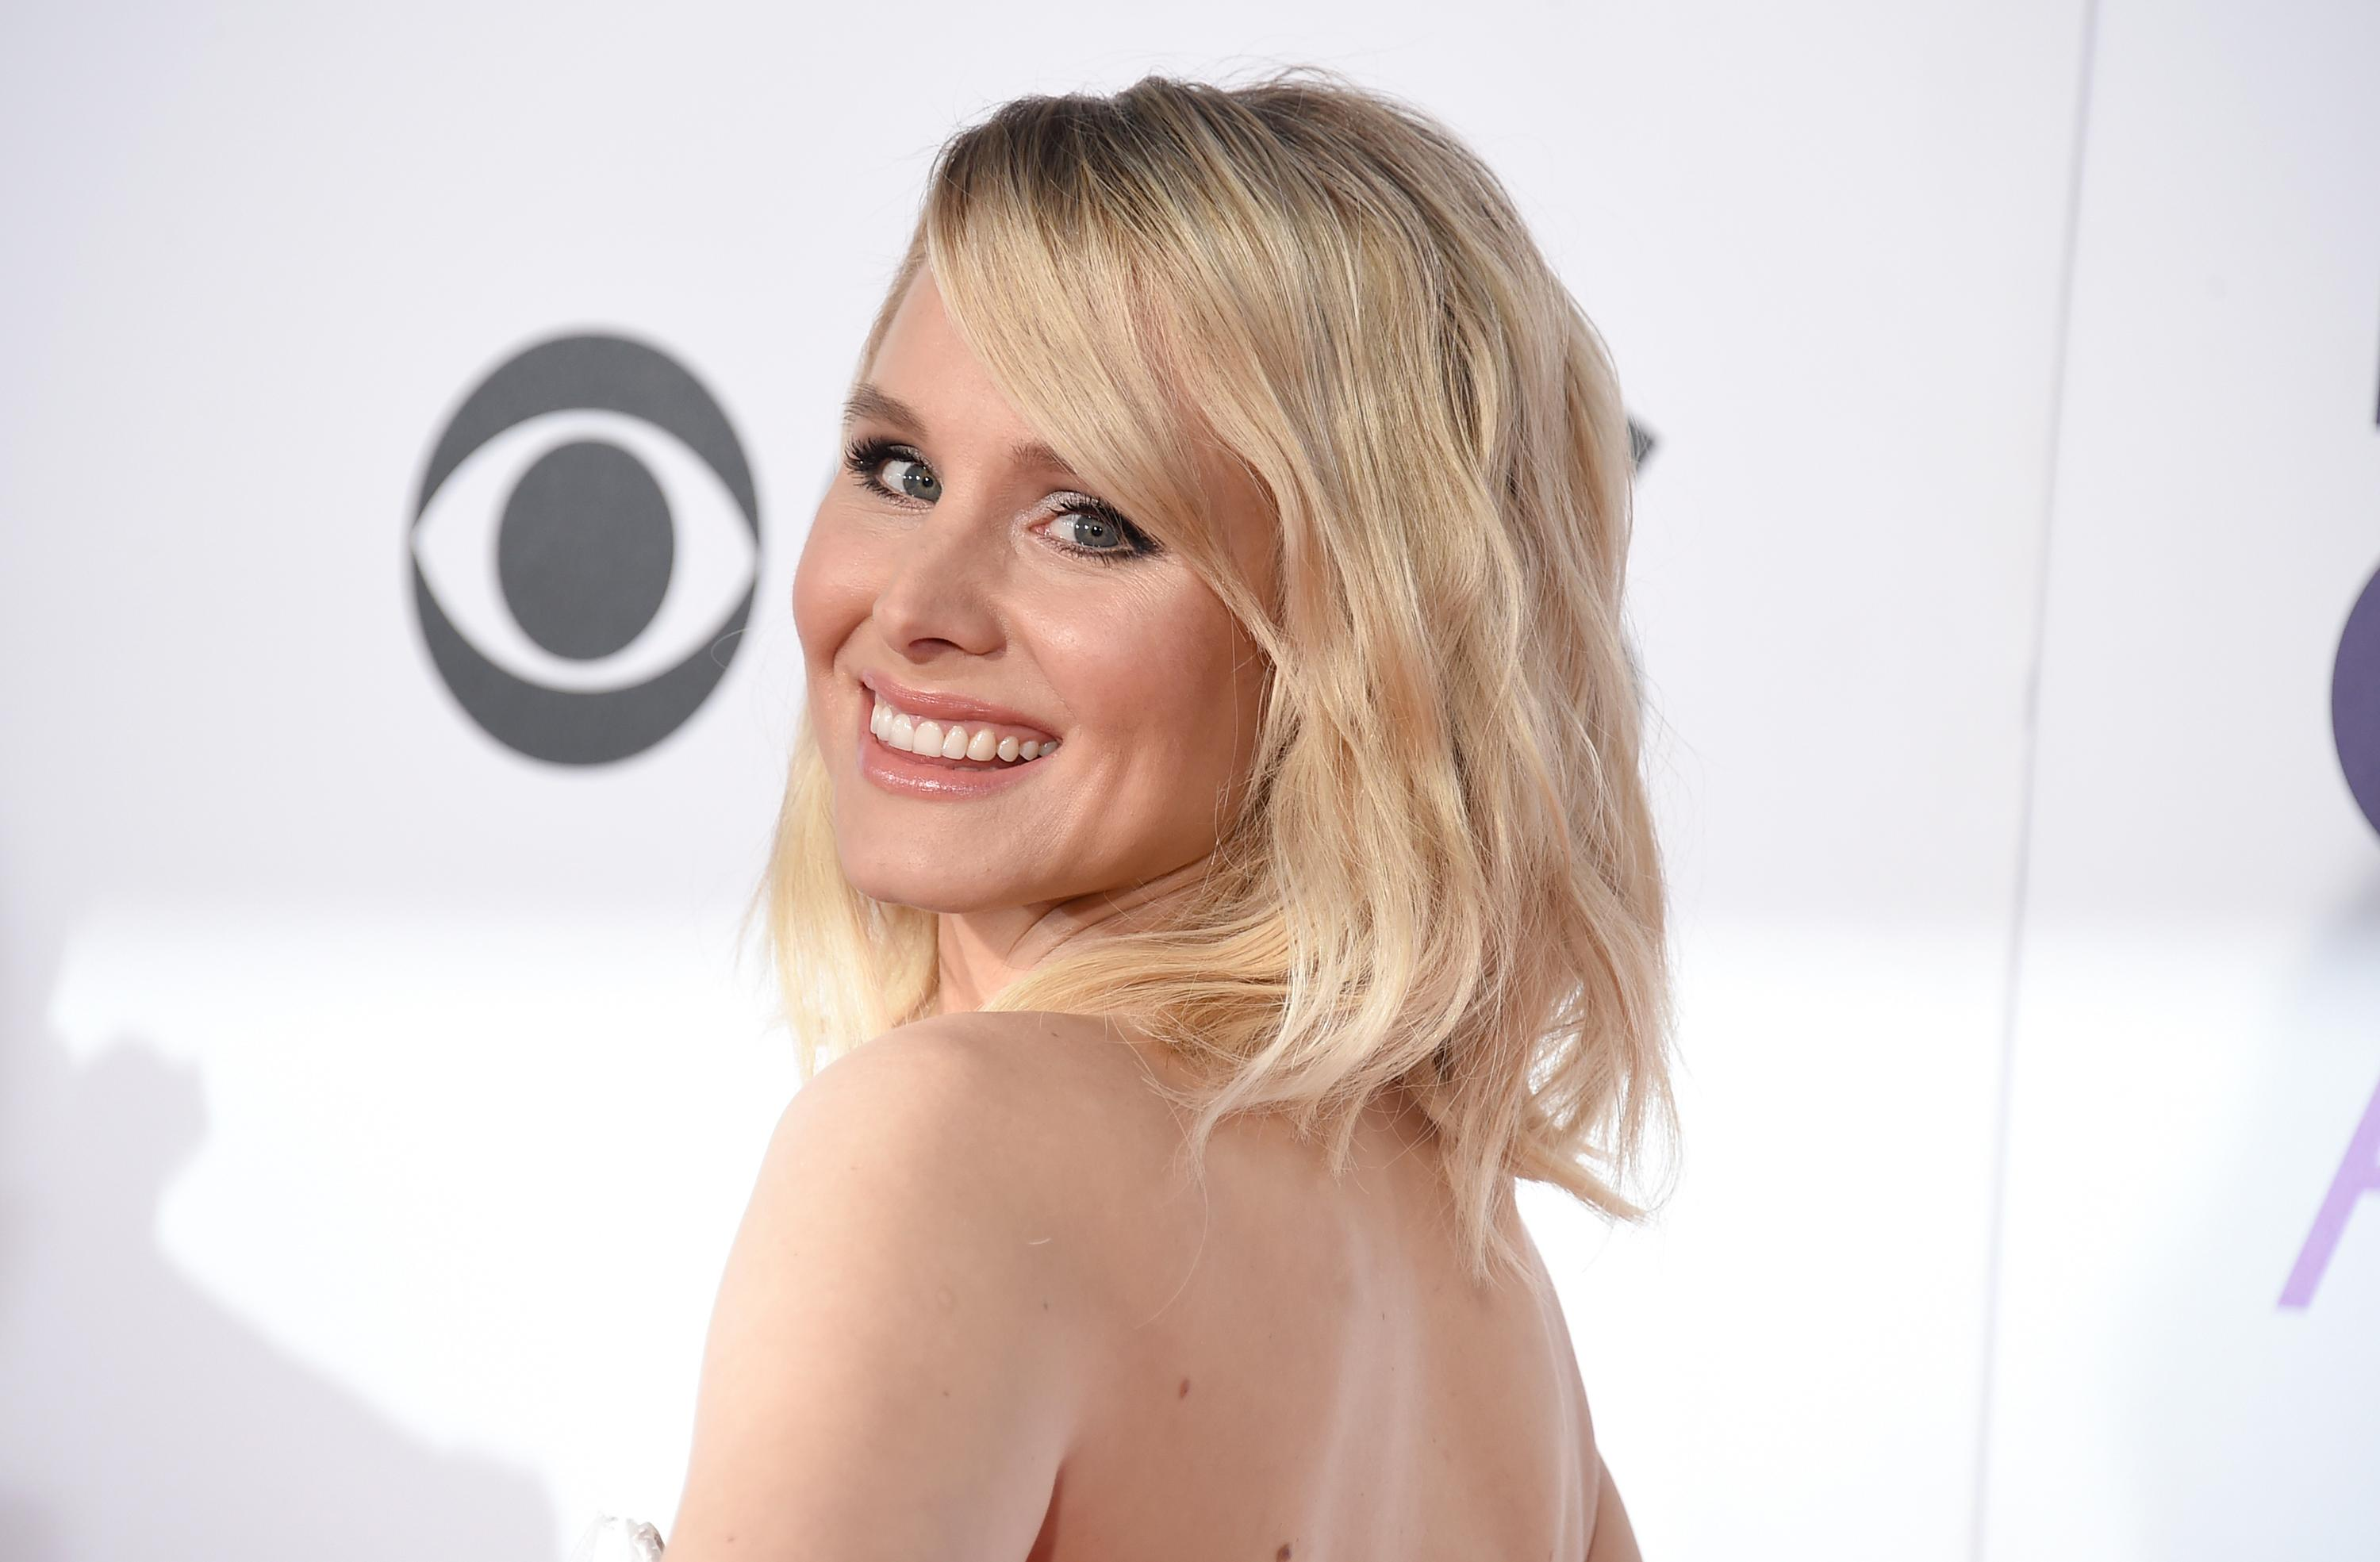 FILE - In this Jan. 18, 2017, file photo, Kristen Bell arrives at the People's Choice Awards at the Microsoft Theater in Los Angeles. Bell rode out Hurricane Irma on Sept. 10, 2017,  at a hotel on the Walt Disney World resort in Florida. (Photo by Jordan Strauss/Invision/AP, File)